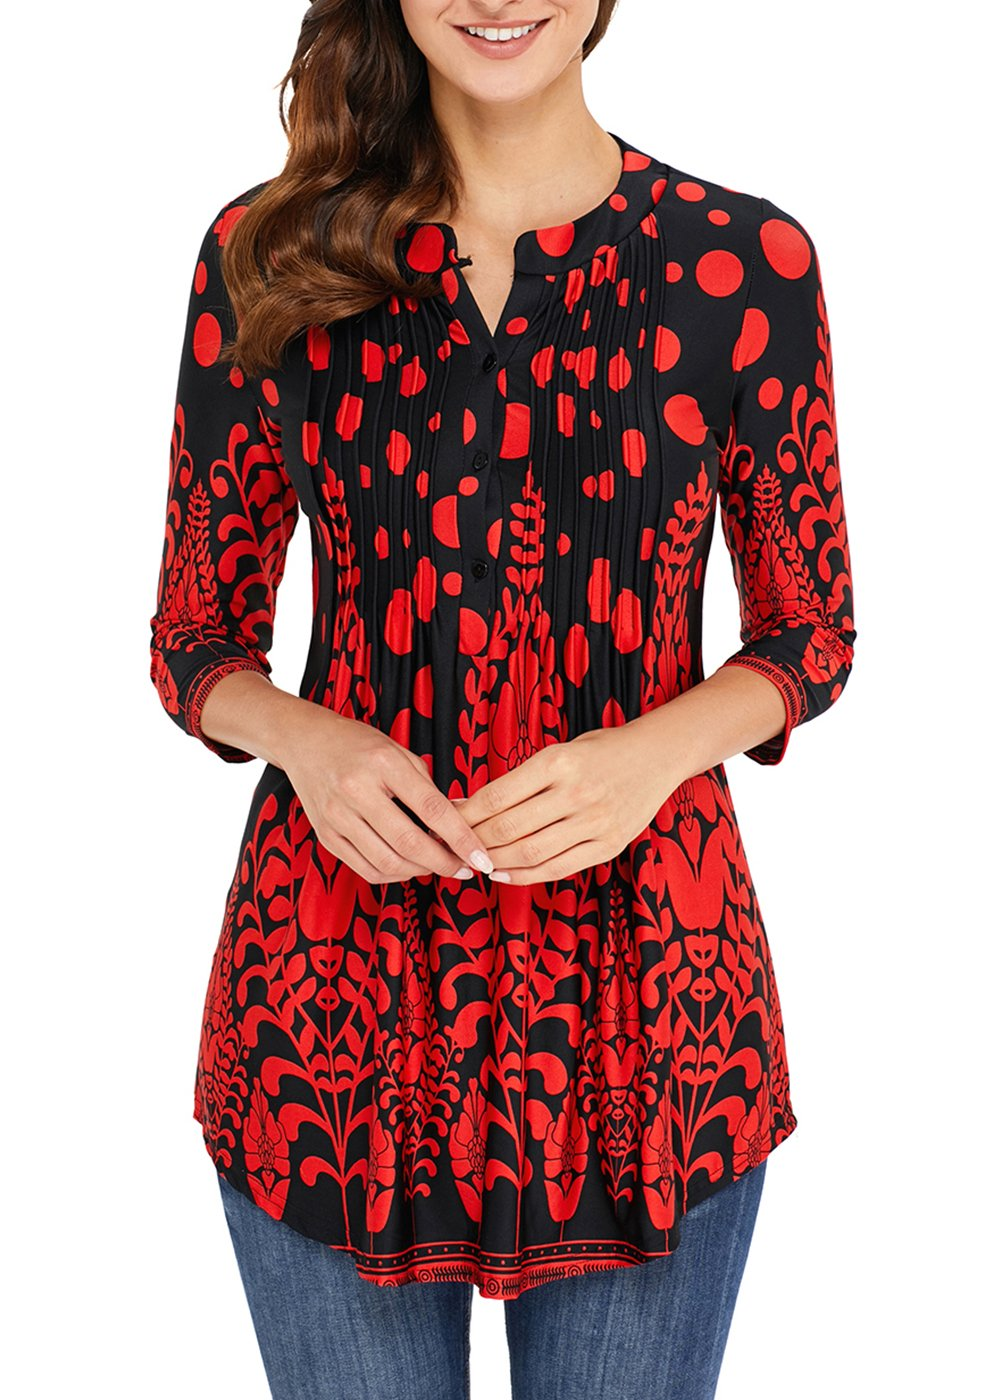 Aincrso Women Floral Tunic with 3/4 Sleeves - Long Casual Floral Shirt Blouse with Round Neck - Buttons up Top Shirt Large Red